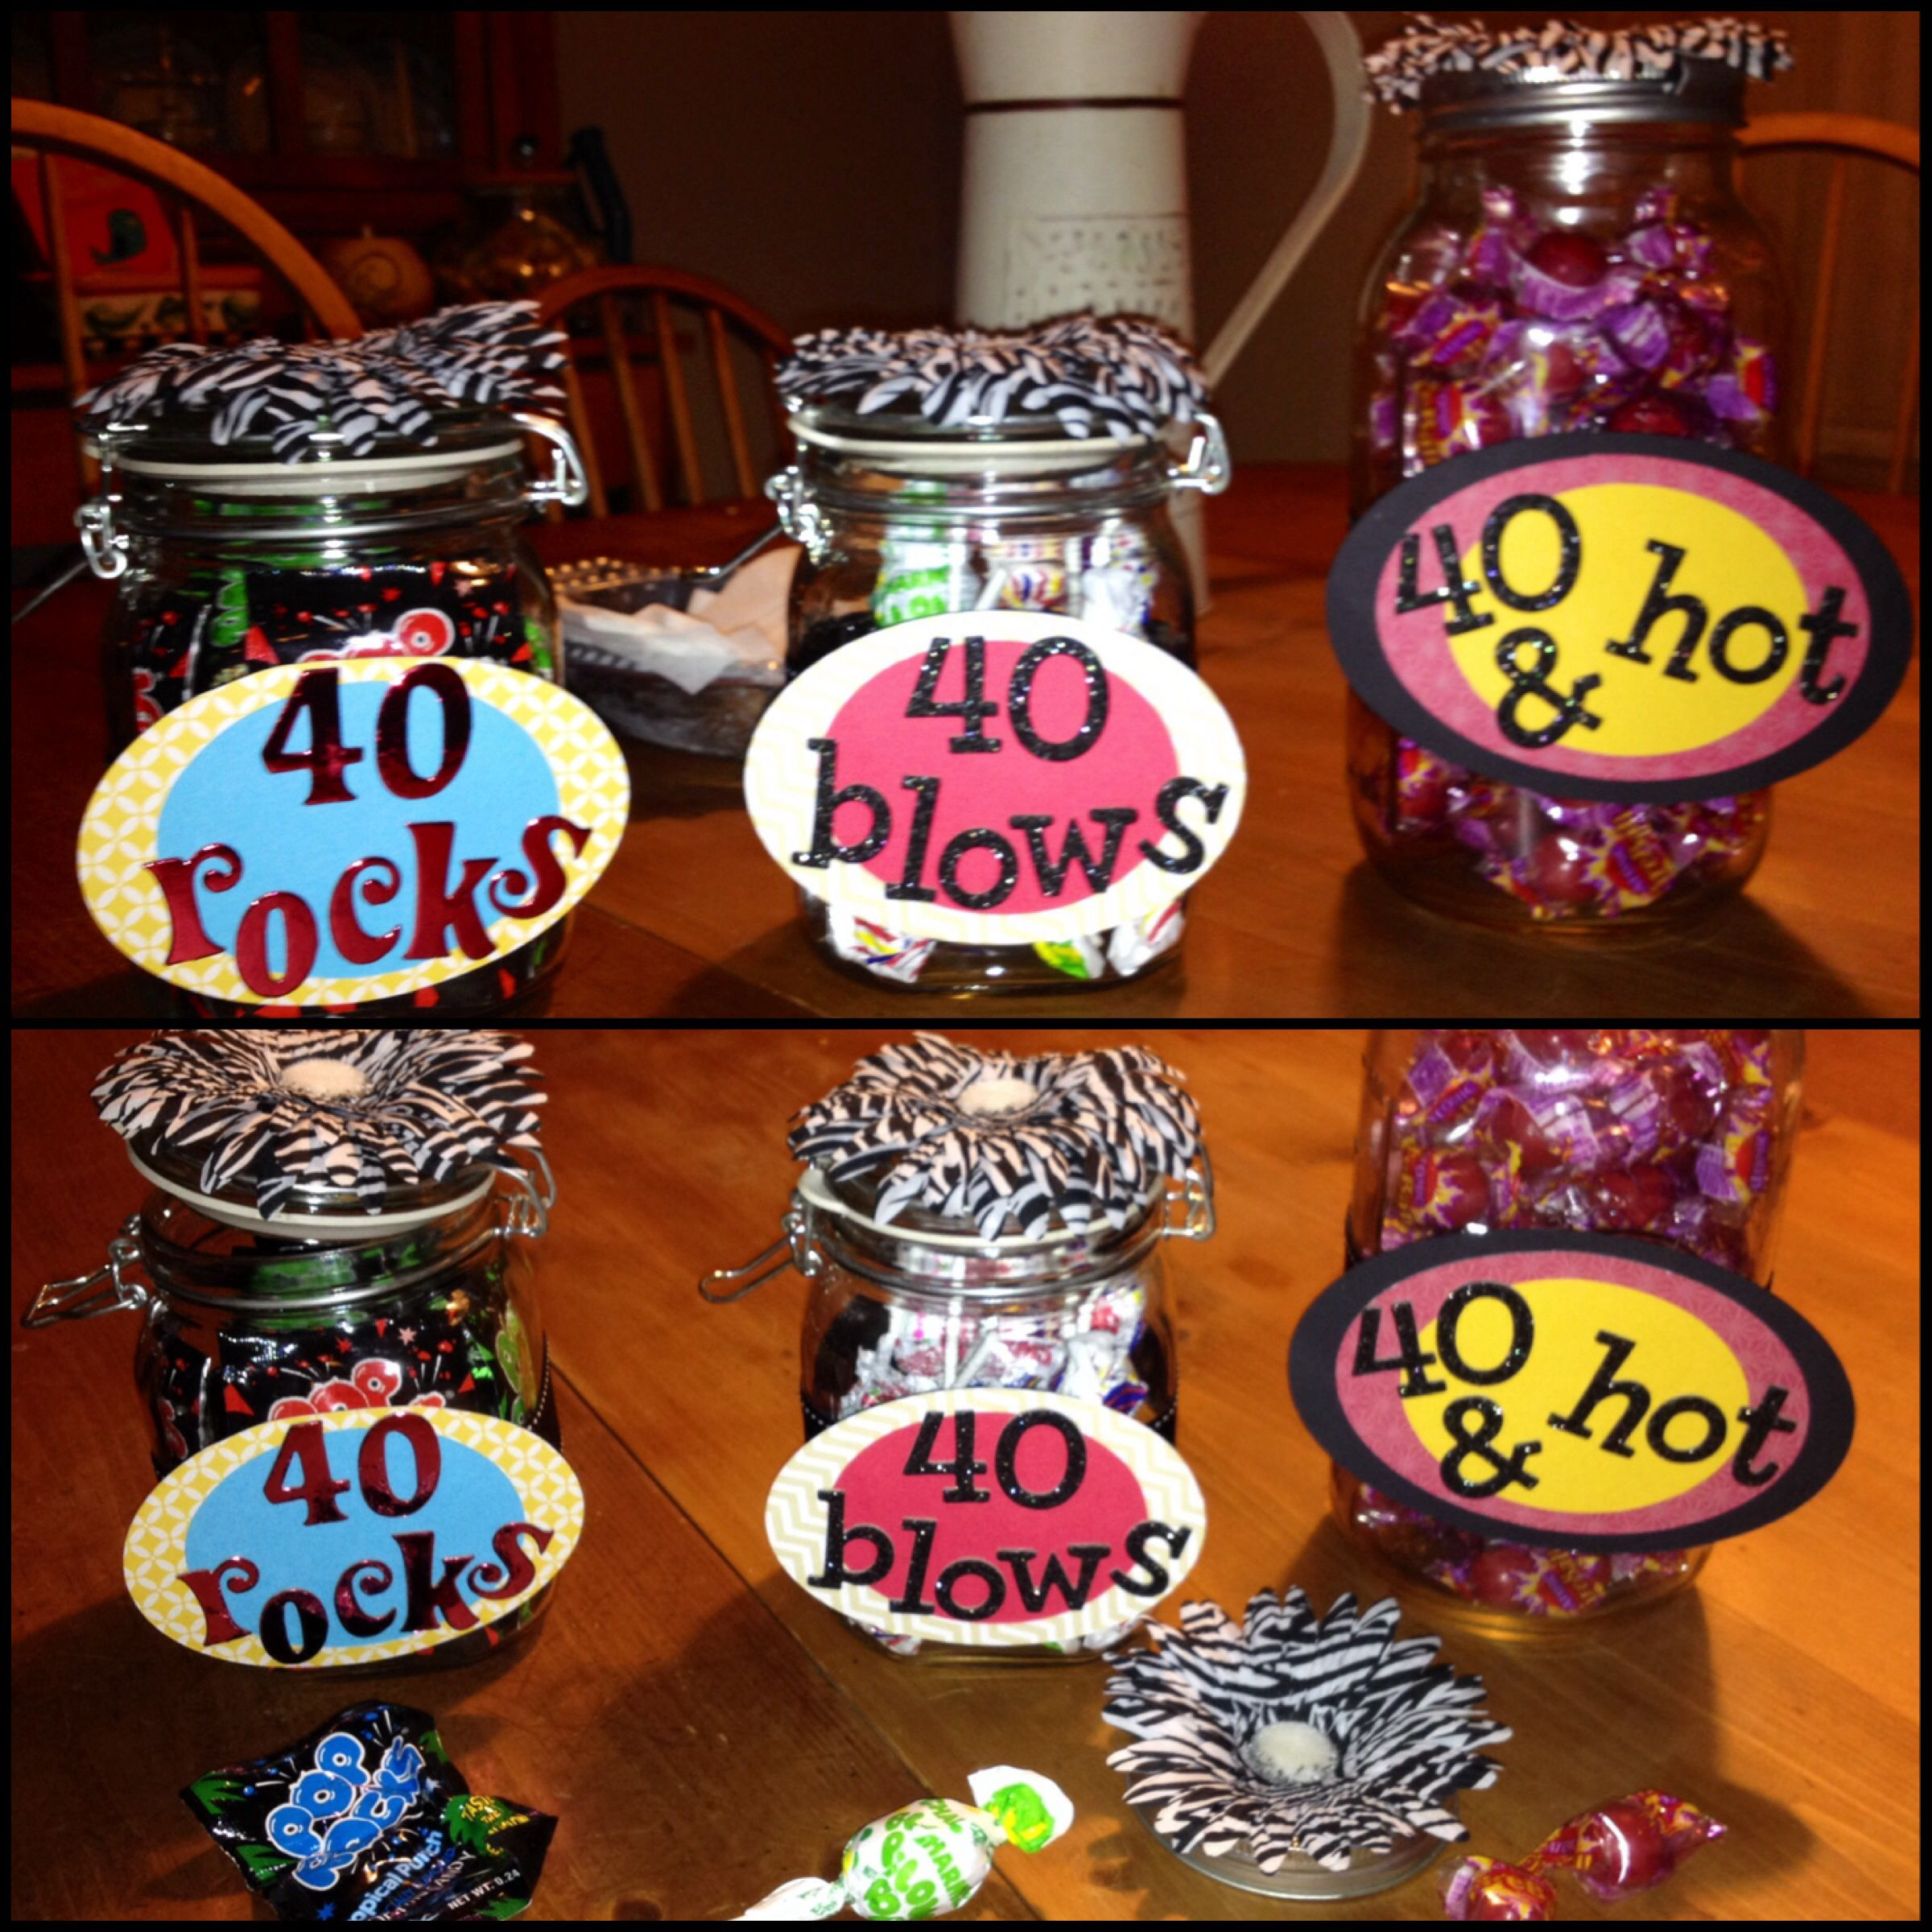 My Latest 40th Birthday Party Favors For A BFF 40 Rocks Pop Blows Blow Pops Hot Atomic Fireballs Had To Order These Candies Online